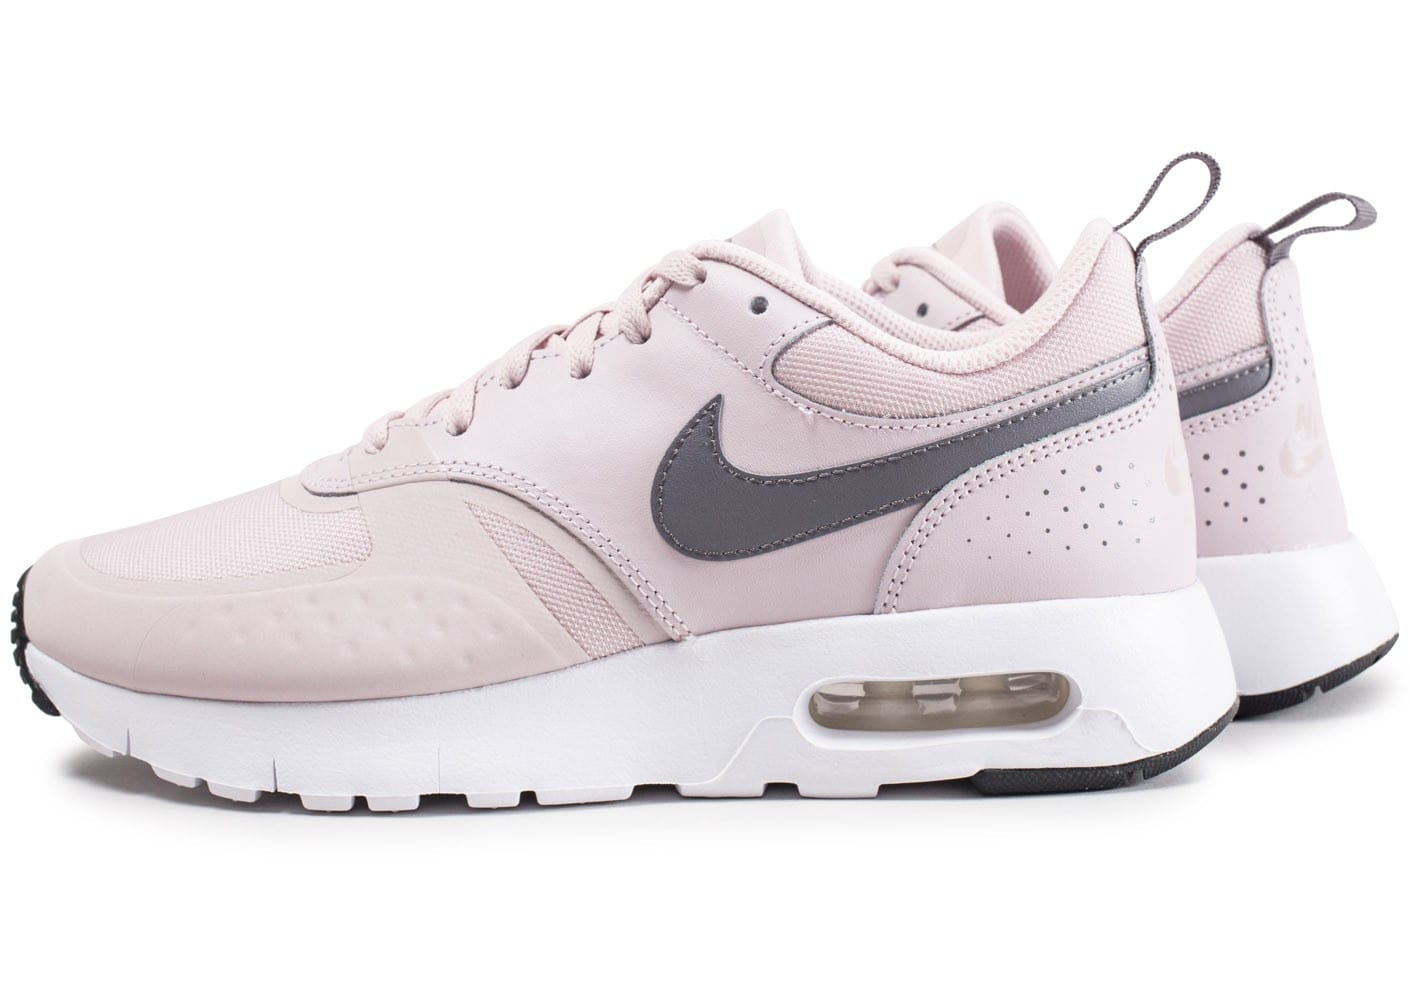 photos officielles 18892 0b647 Nike Air Max Vision junior rose et blanche - Chaussures ...